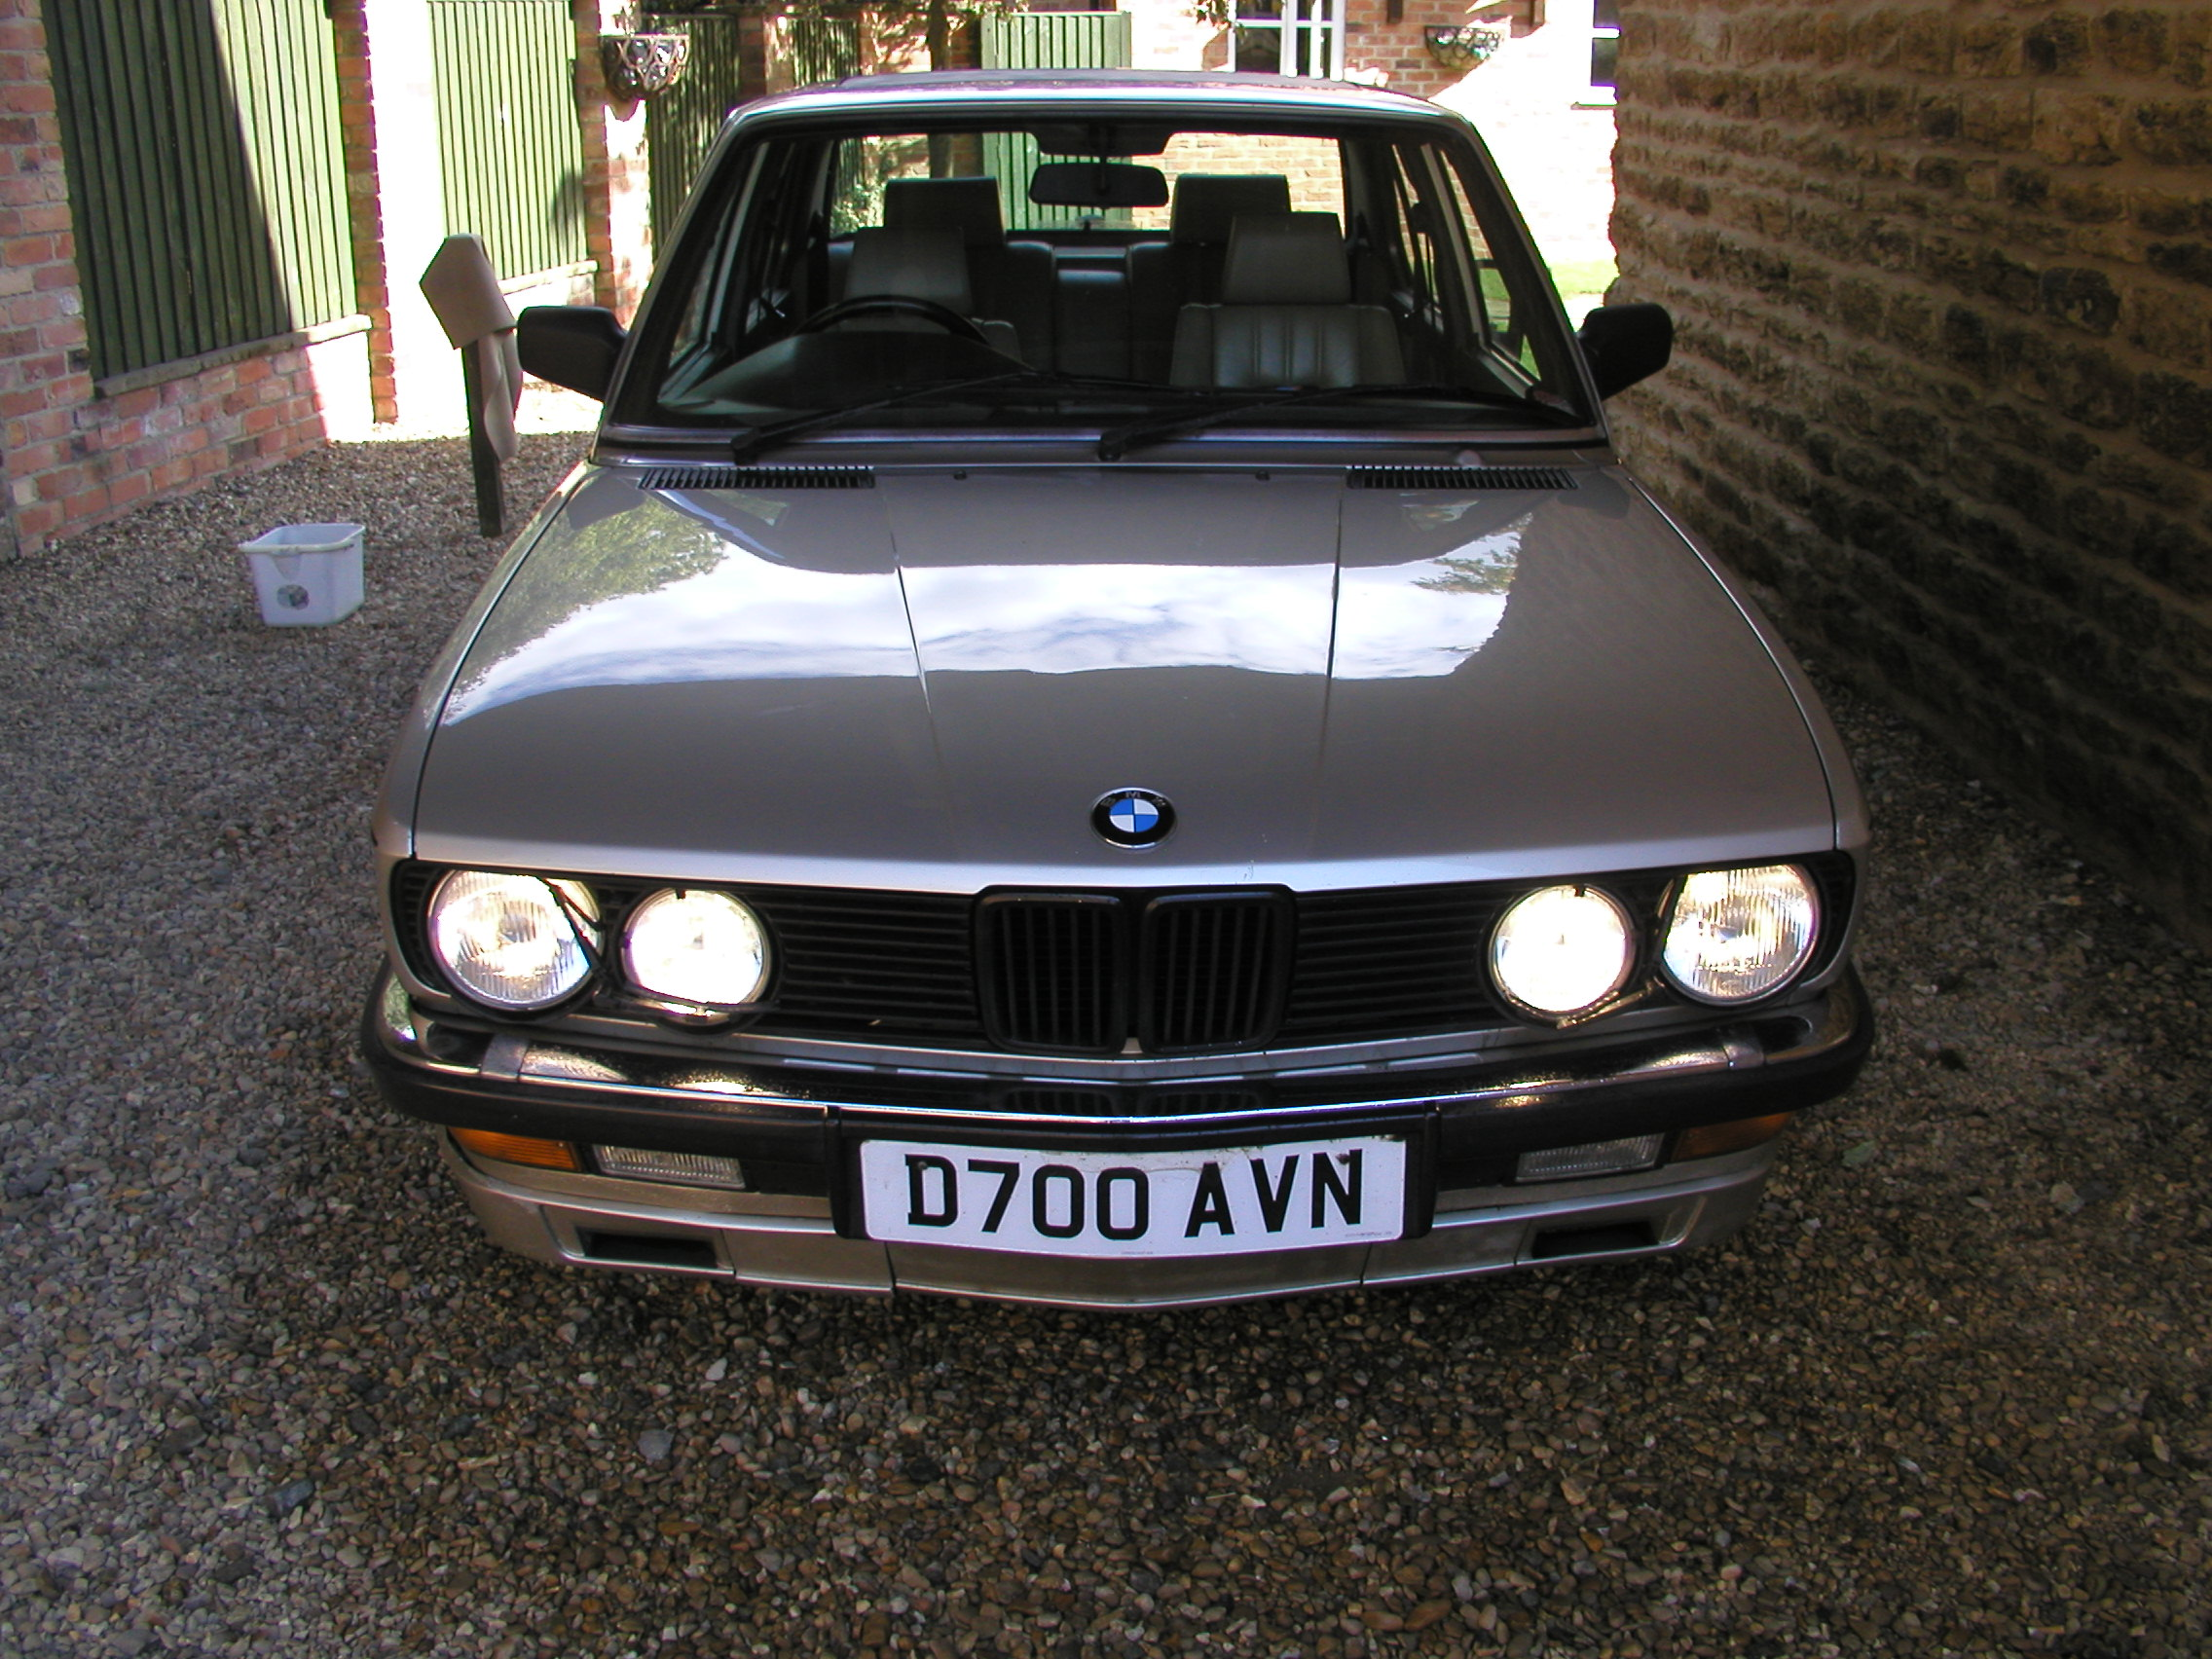 Bmw driving gloves uk - A Couple Of Days Ago I Locked The Door To My Car I Was Wearing A Long Herringbone Coat Driving Gloves And My Best Black Shoes This Isn T Unusual